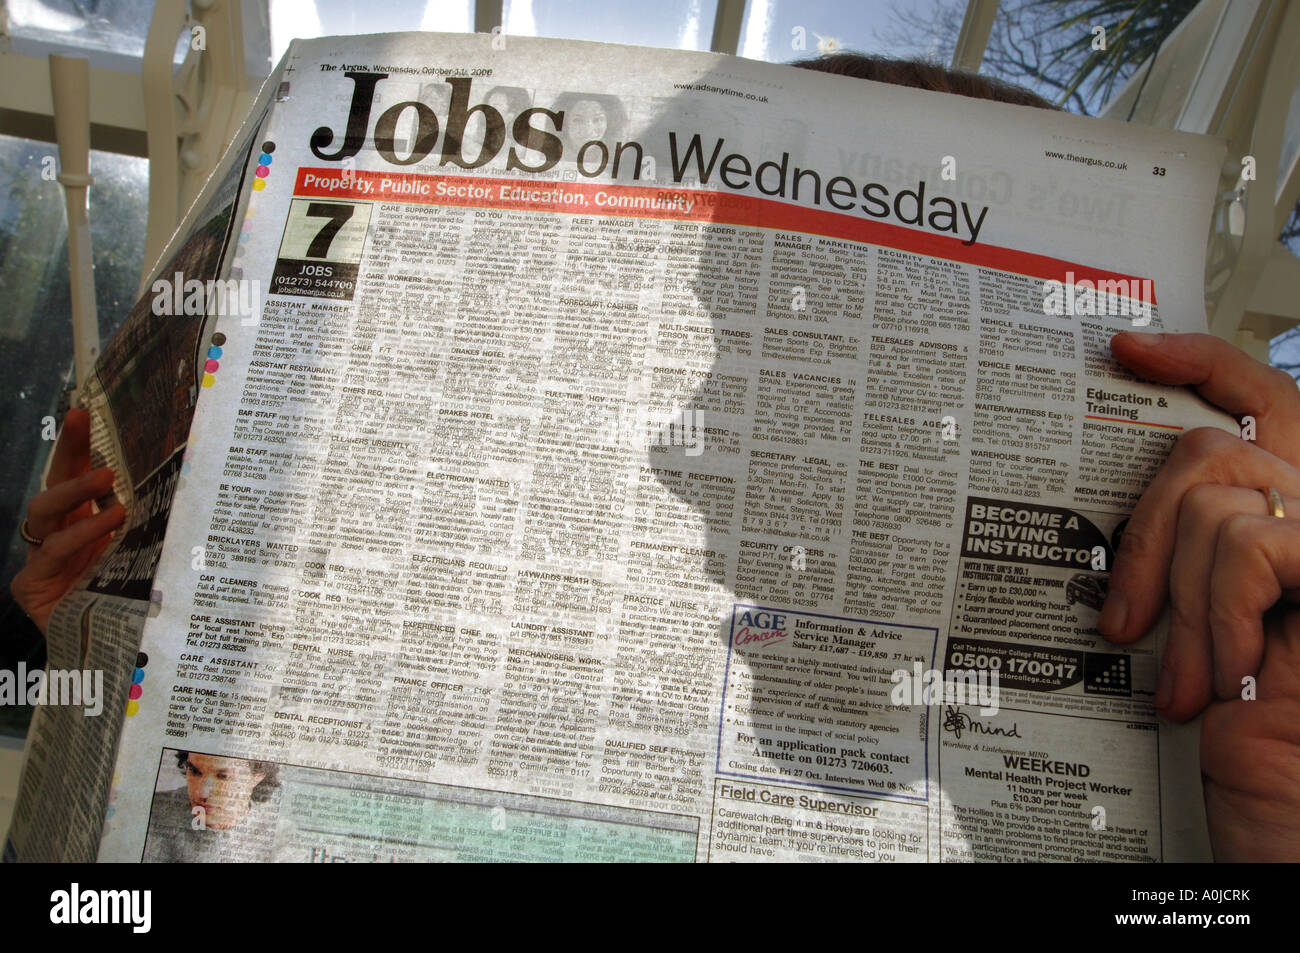 Silhouette of someone looking at job ads in a paper - Stock Image